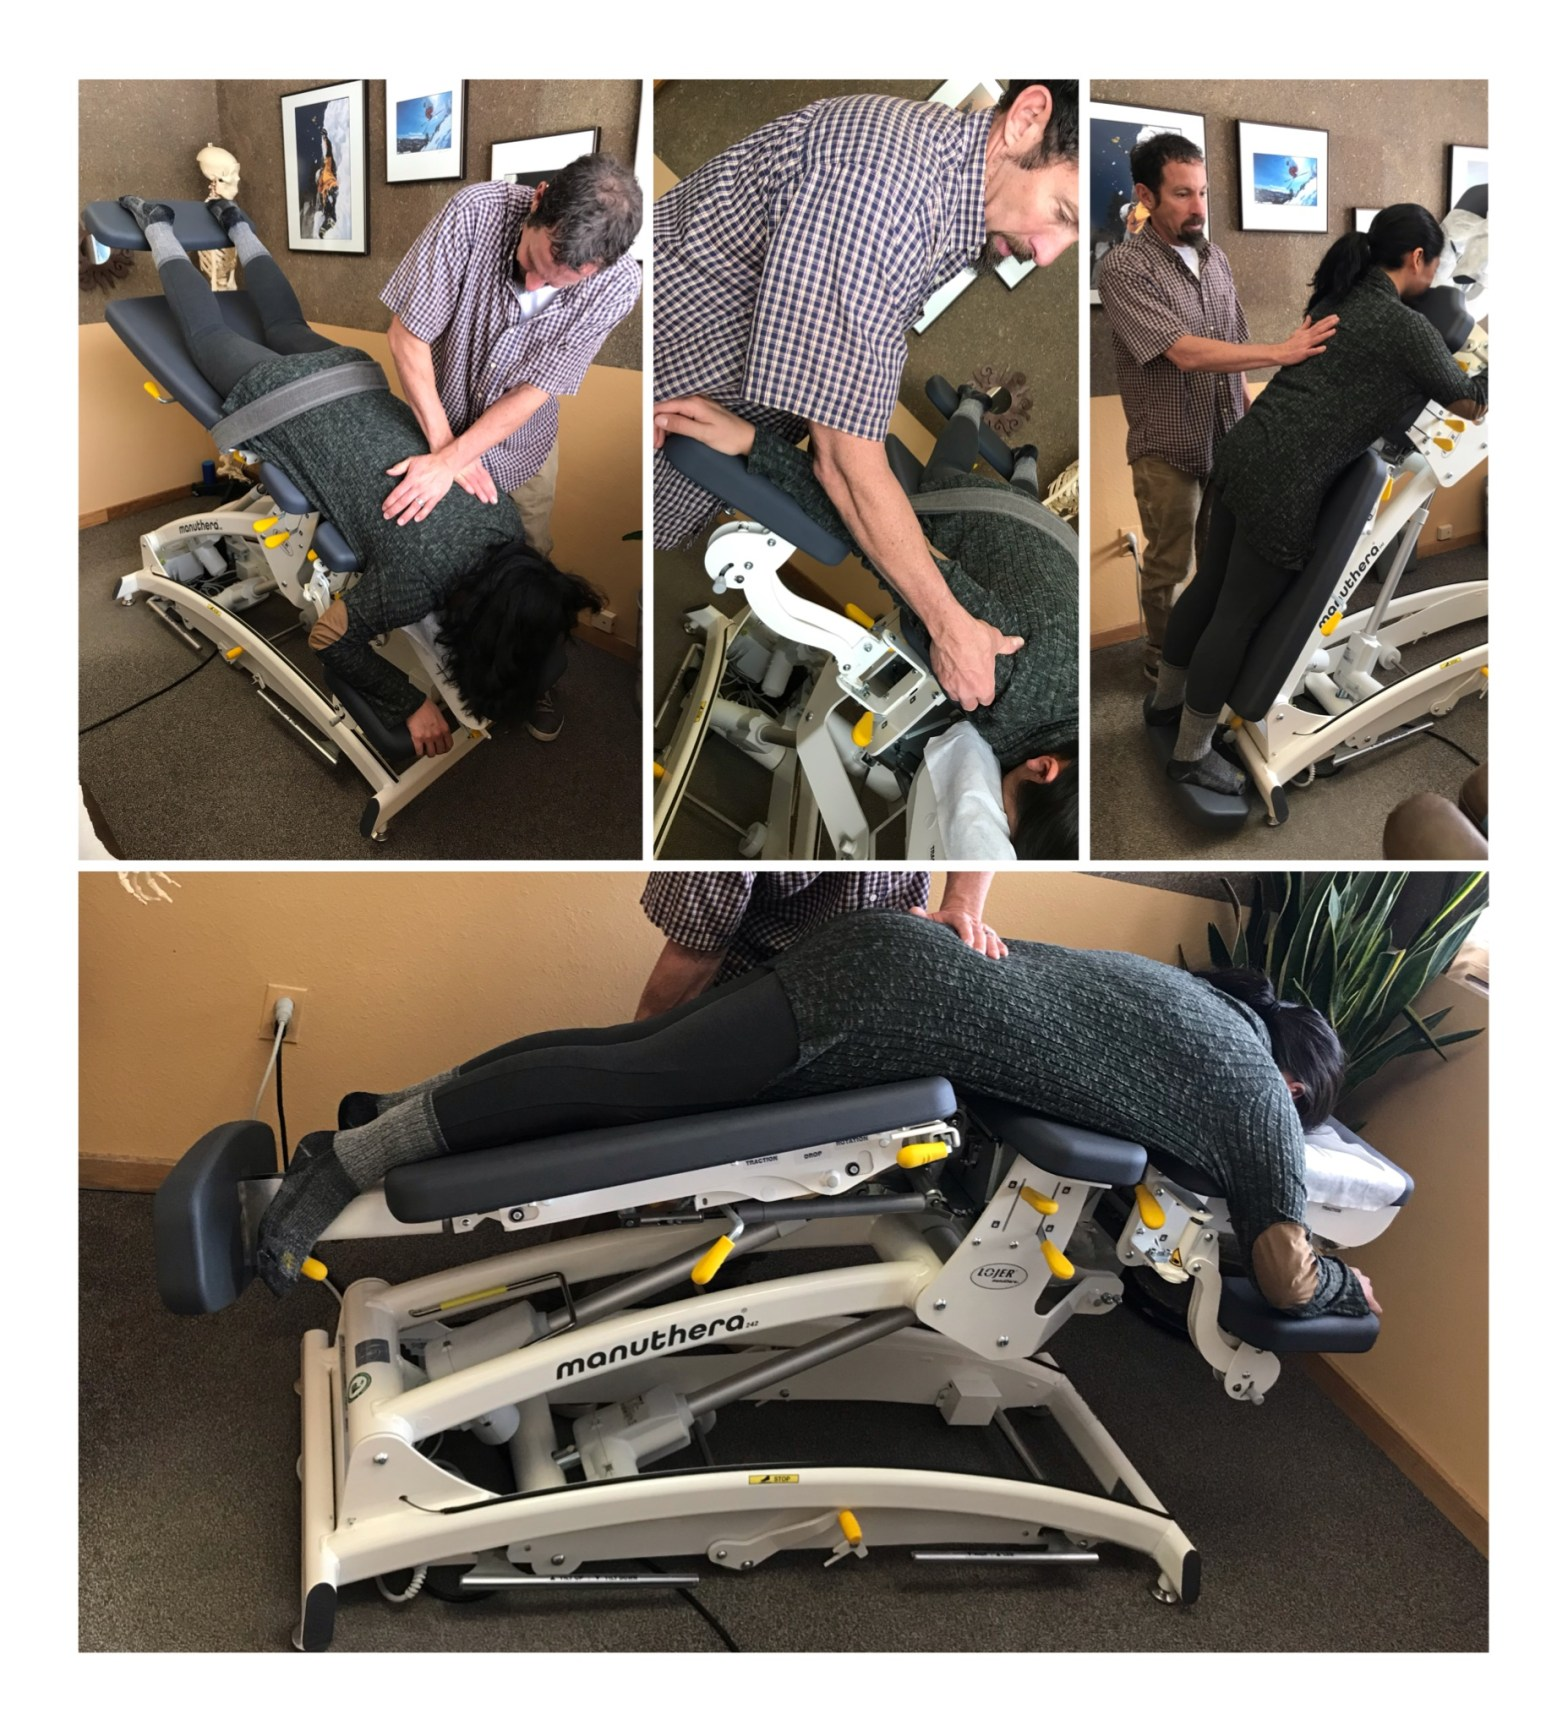 Dr. John Graham demonstrating how the Manuthera 242 Mobilisation table works